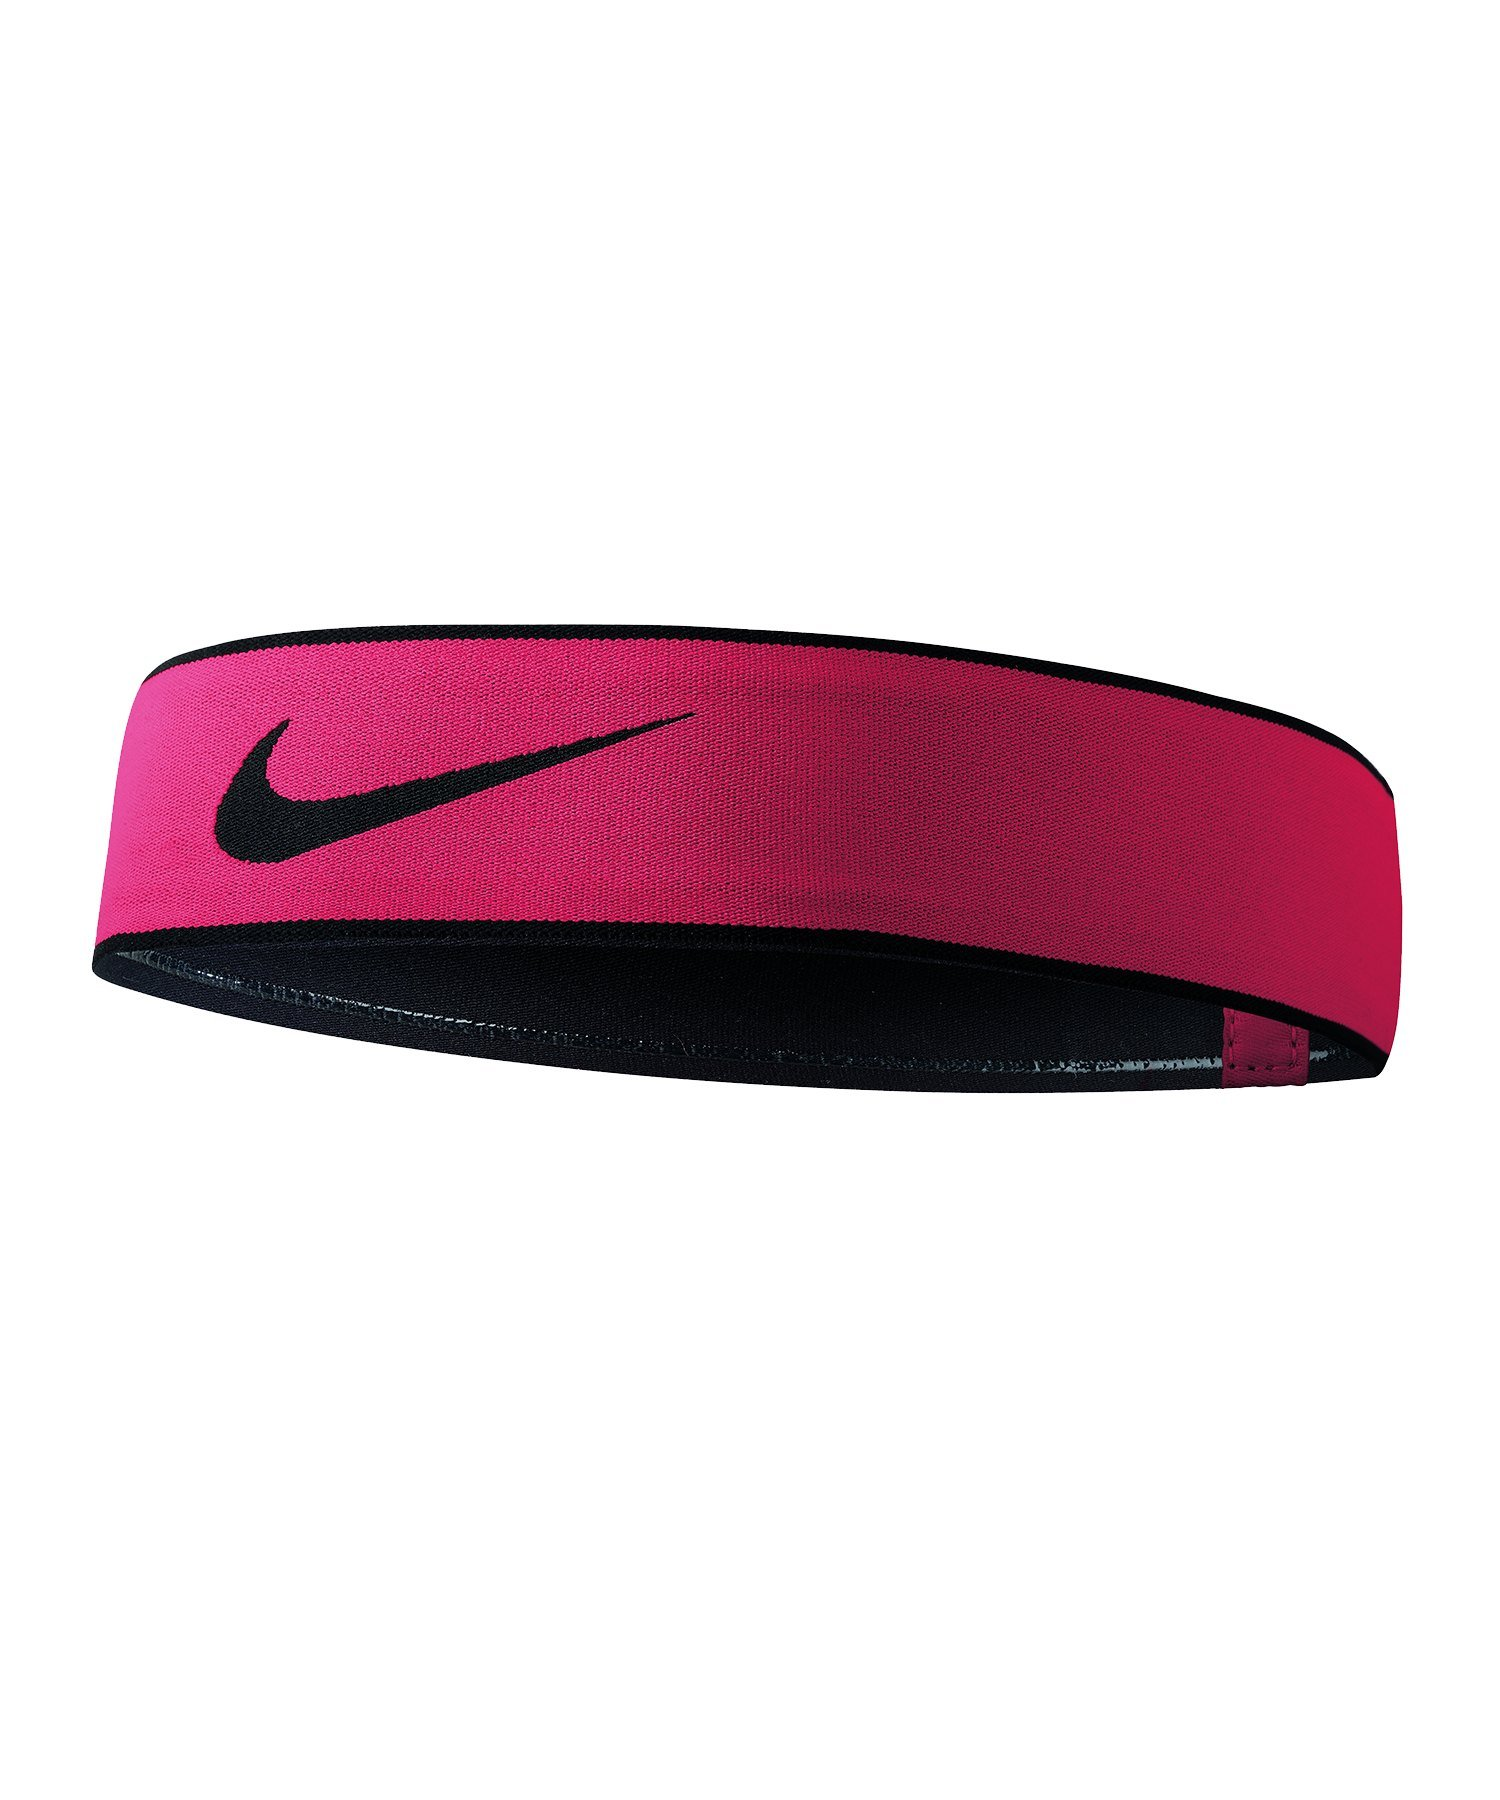 Nike 2.0 Haarband Stirnband Thick F808